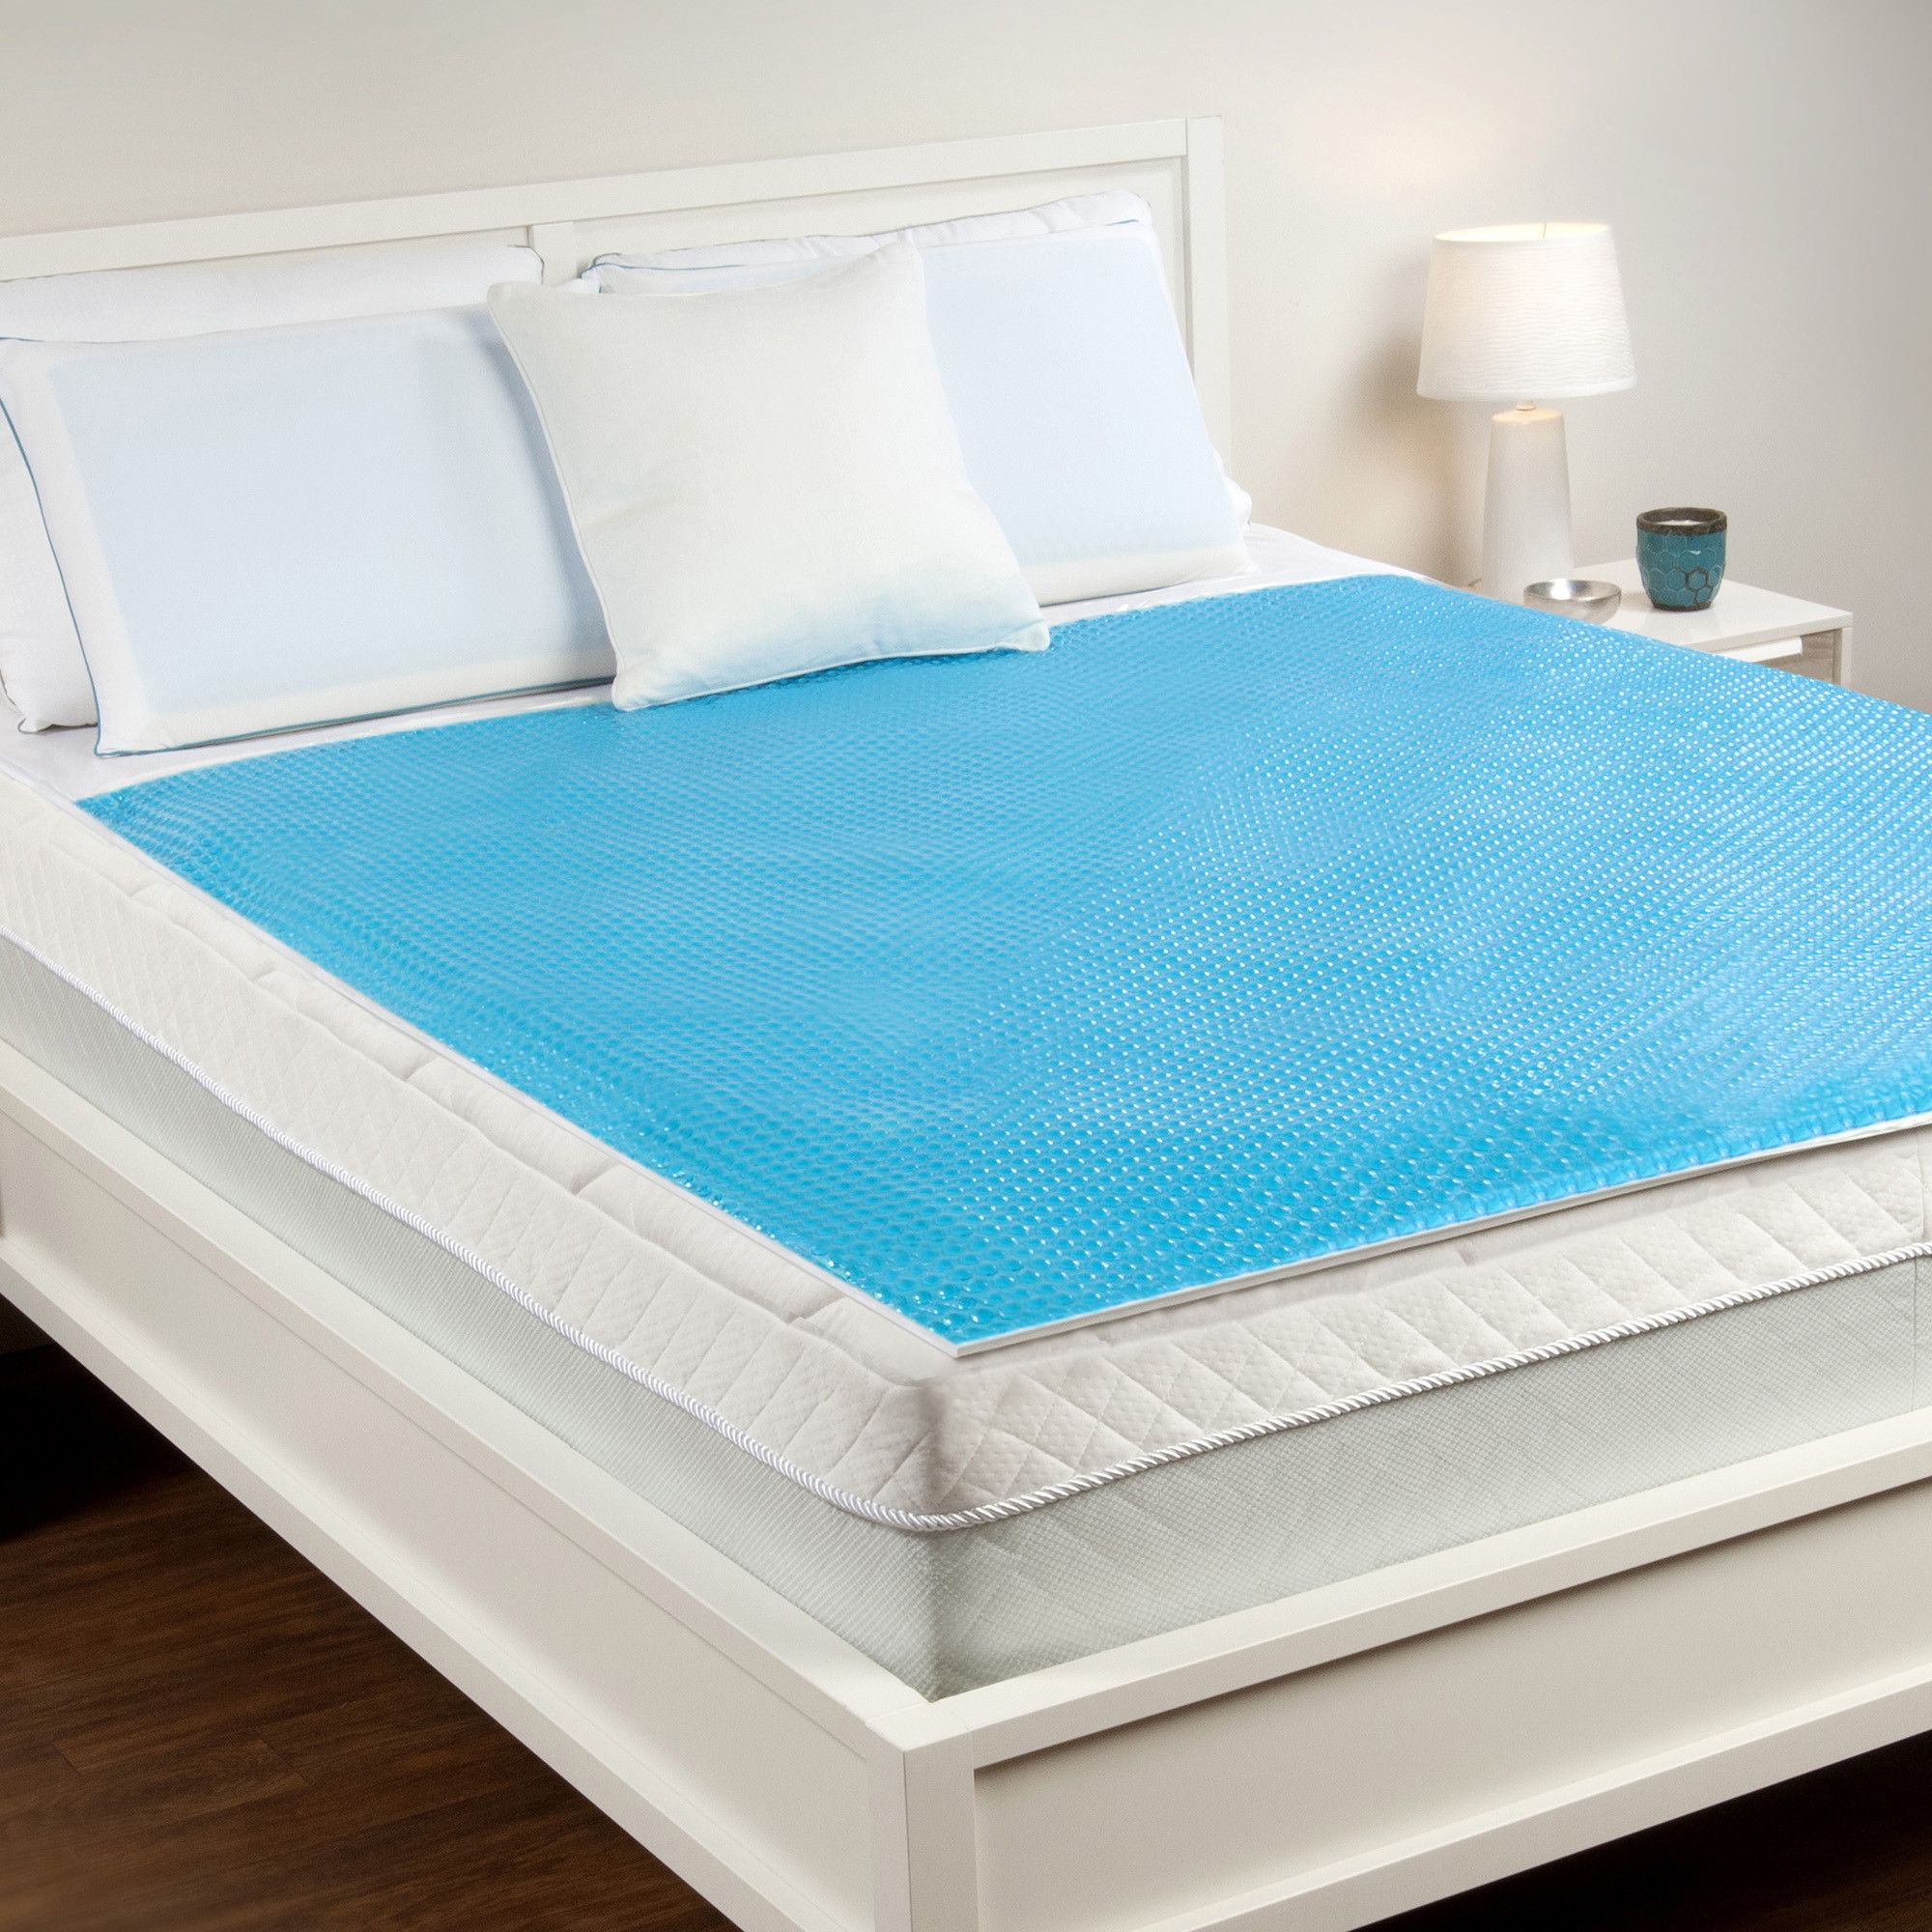 Amazing Offer On Best Price Mattress Topper Twin Xl 2 5 Memory Foam Mattress Topper Certipur Us Certified Ventilated Cooling Twin Extra Long Size Online In 2020 Queen Mattress Topper Mattress Comfort Mattress